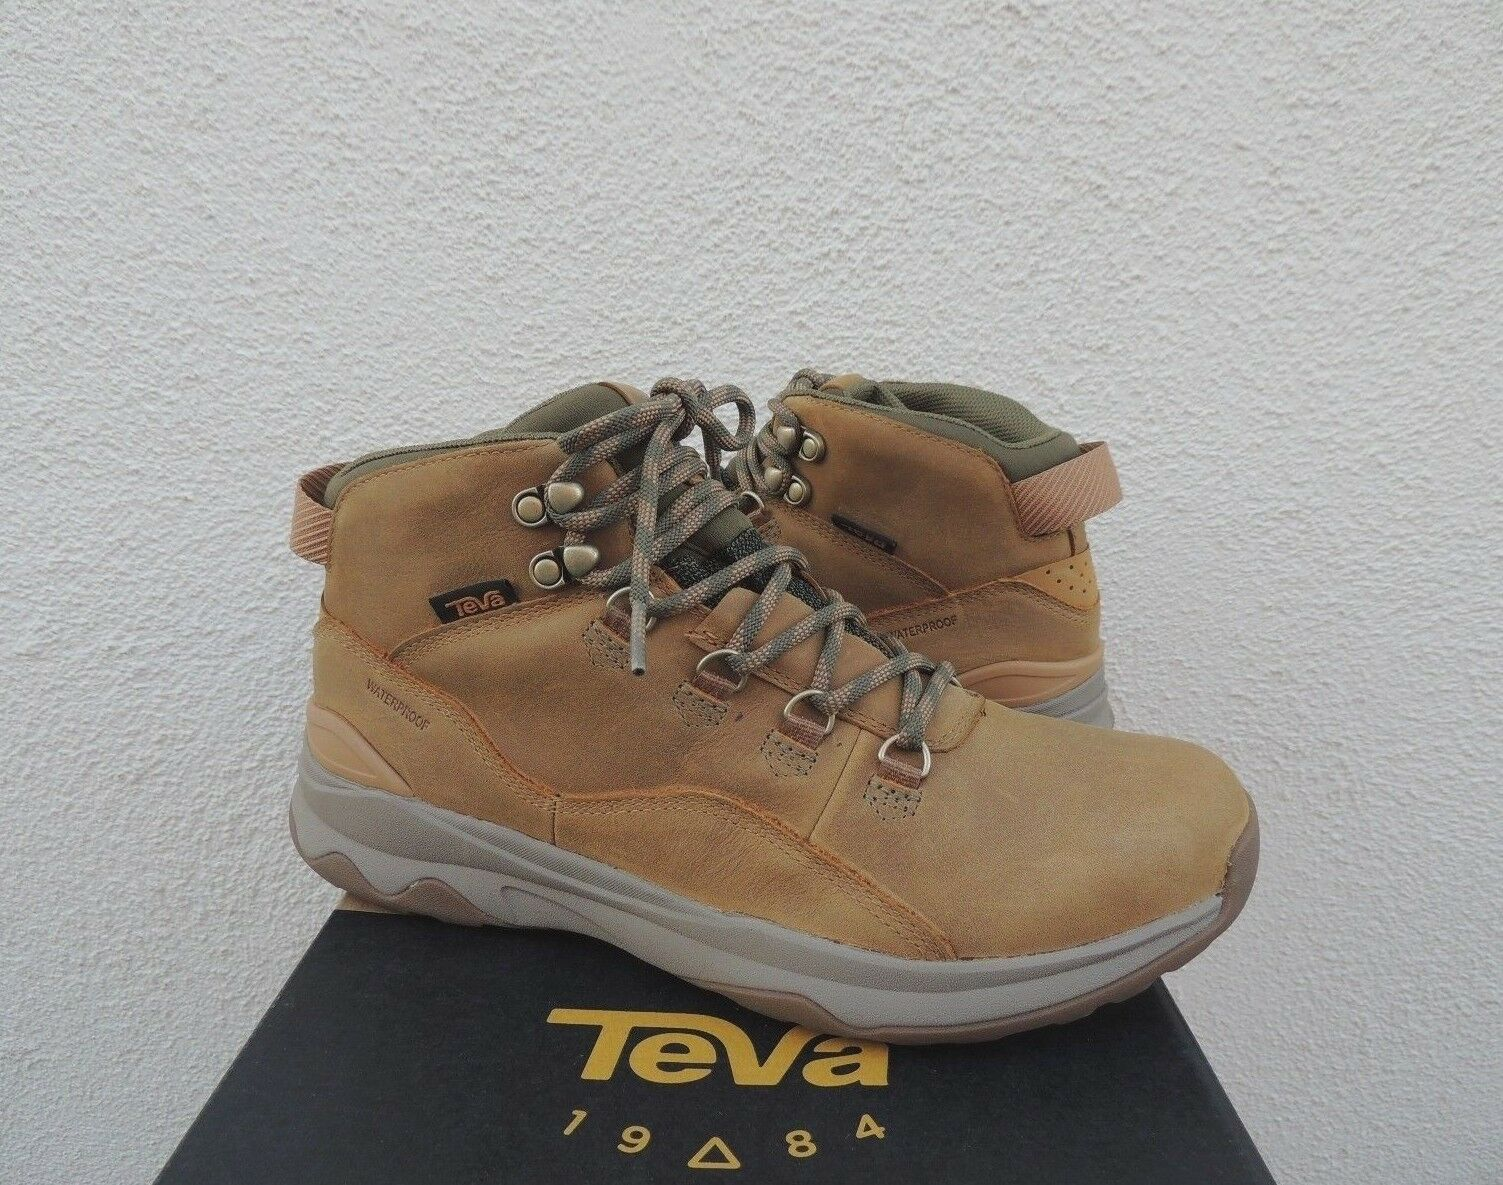 TEVA SAND ARROWOOD UTILITY MID WP LEATHER Turnschuhe Stiefel, MEN US 10  EUR 43 NEW